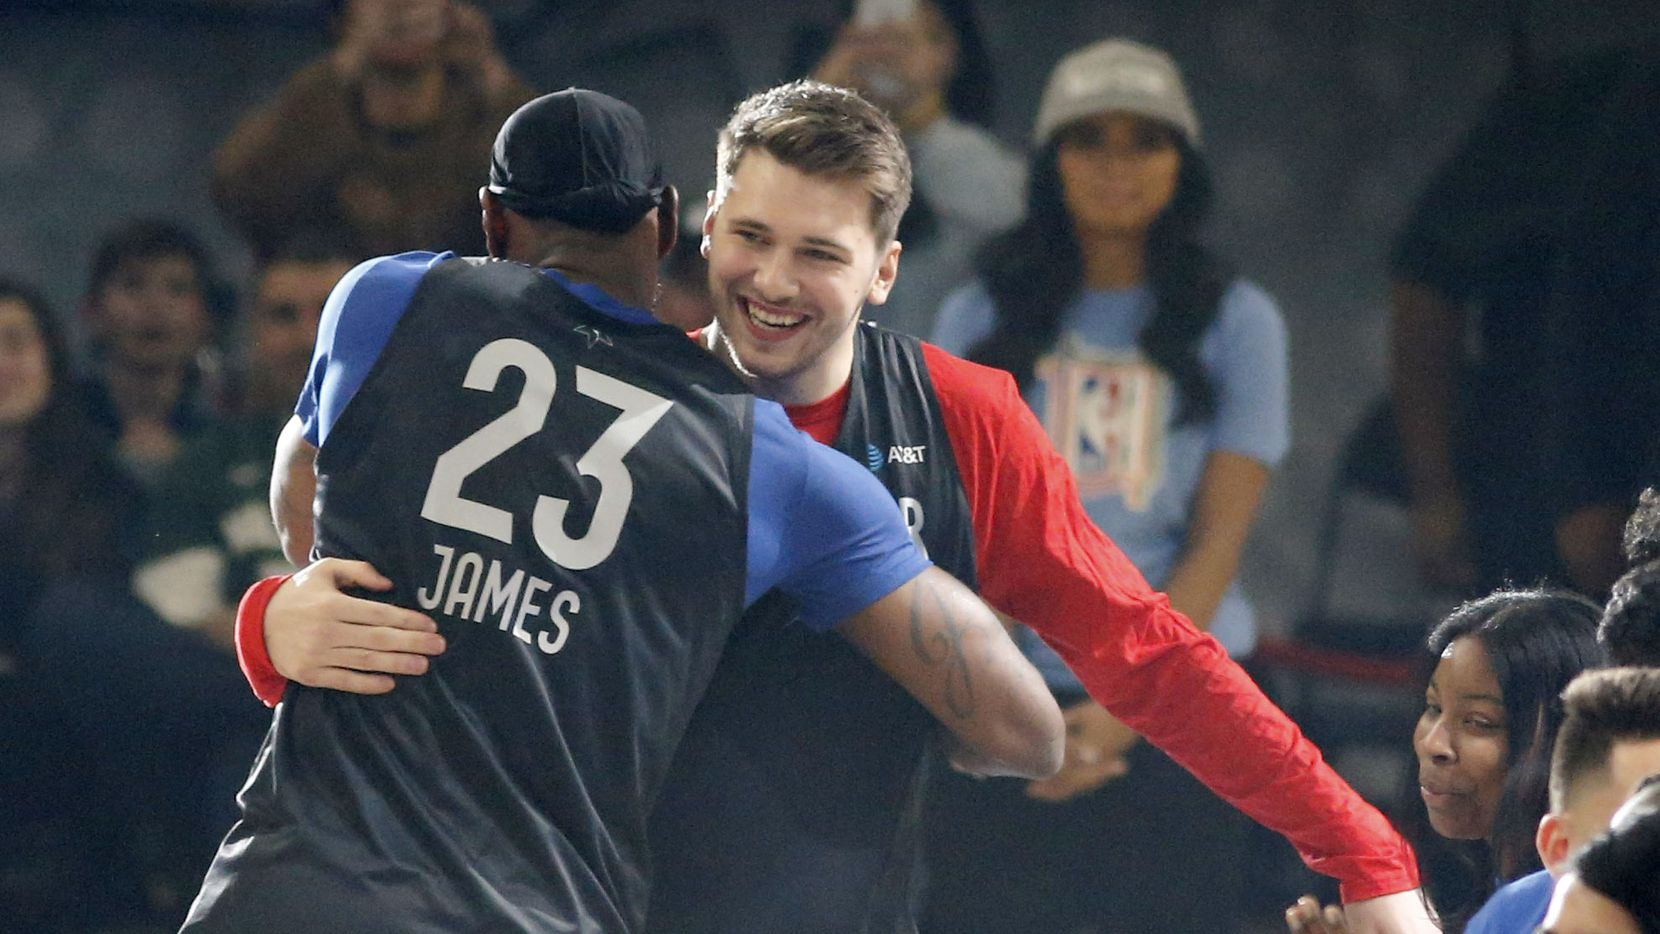 Lakers guard/forward LeBron James (23) and Mavericks guard Luka Doncic (77) meet after player introductions during practice for the 2020 NBA All-Star Game at Wintrust Arena in Chicago on Saturday, Febr. 15, 2020.